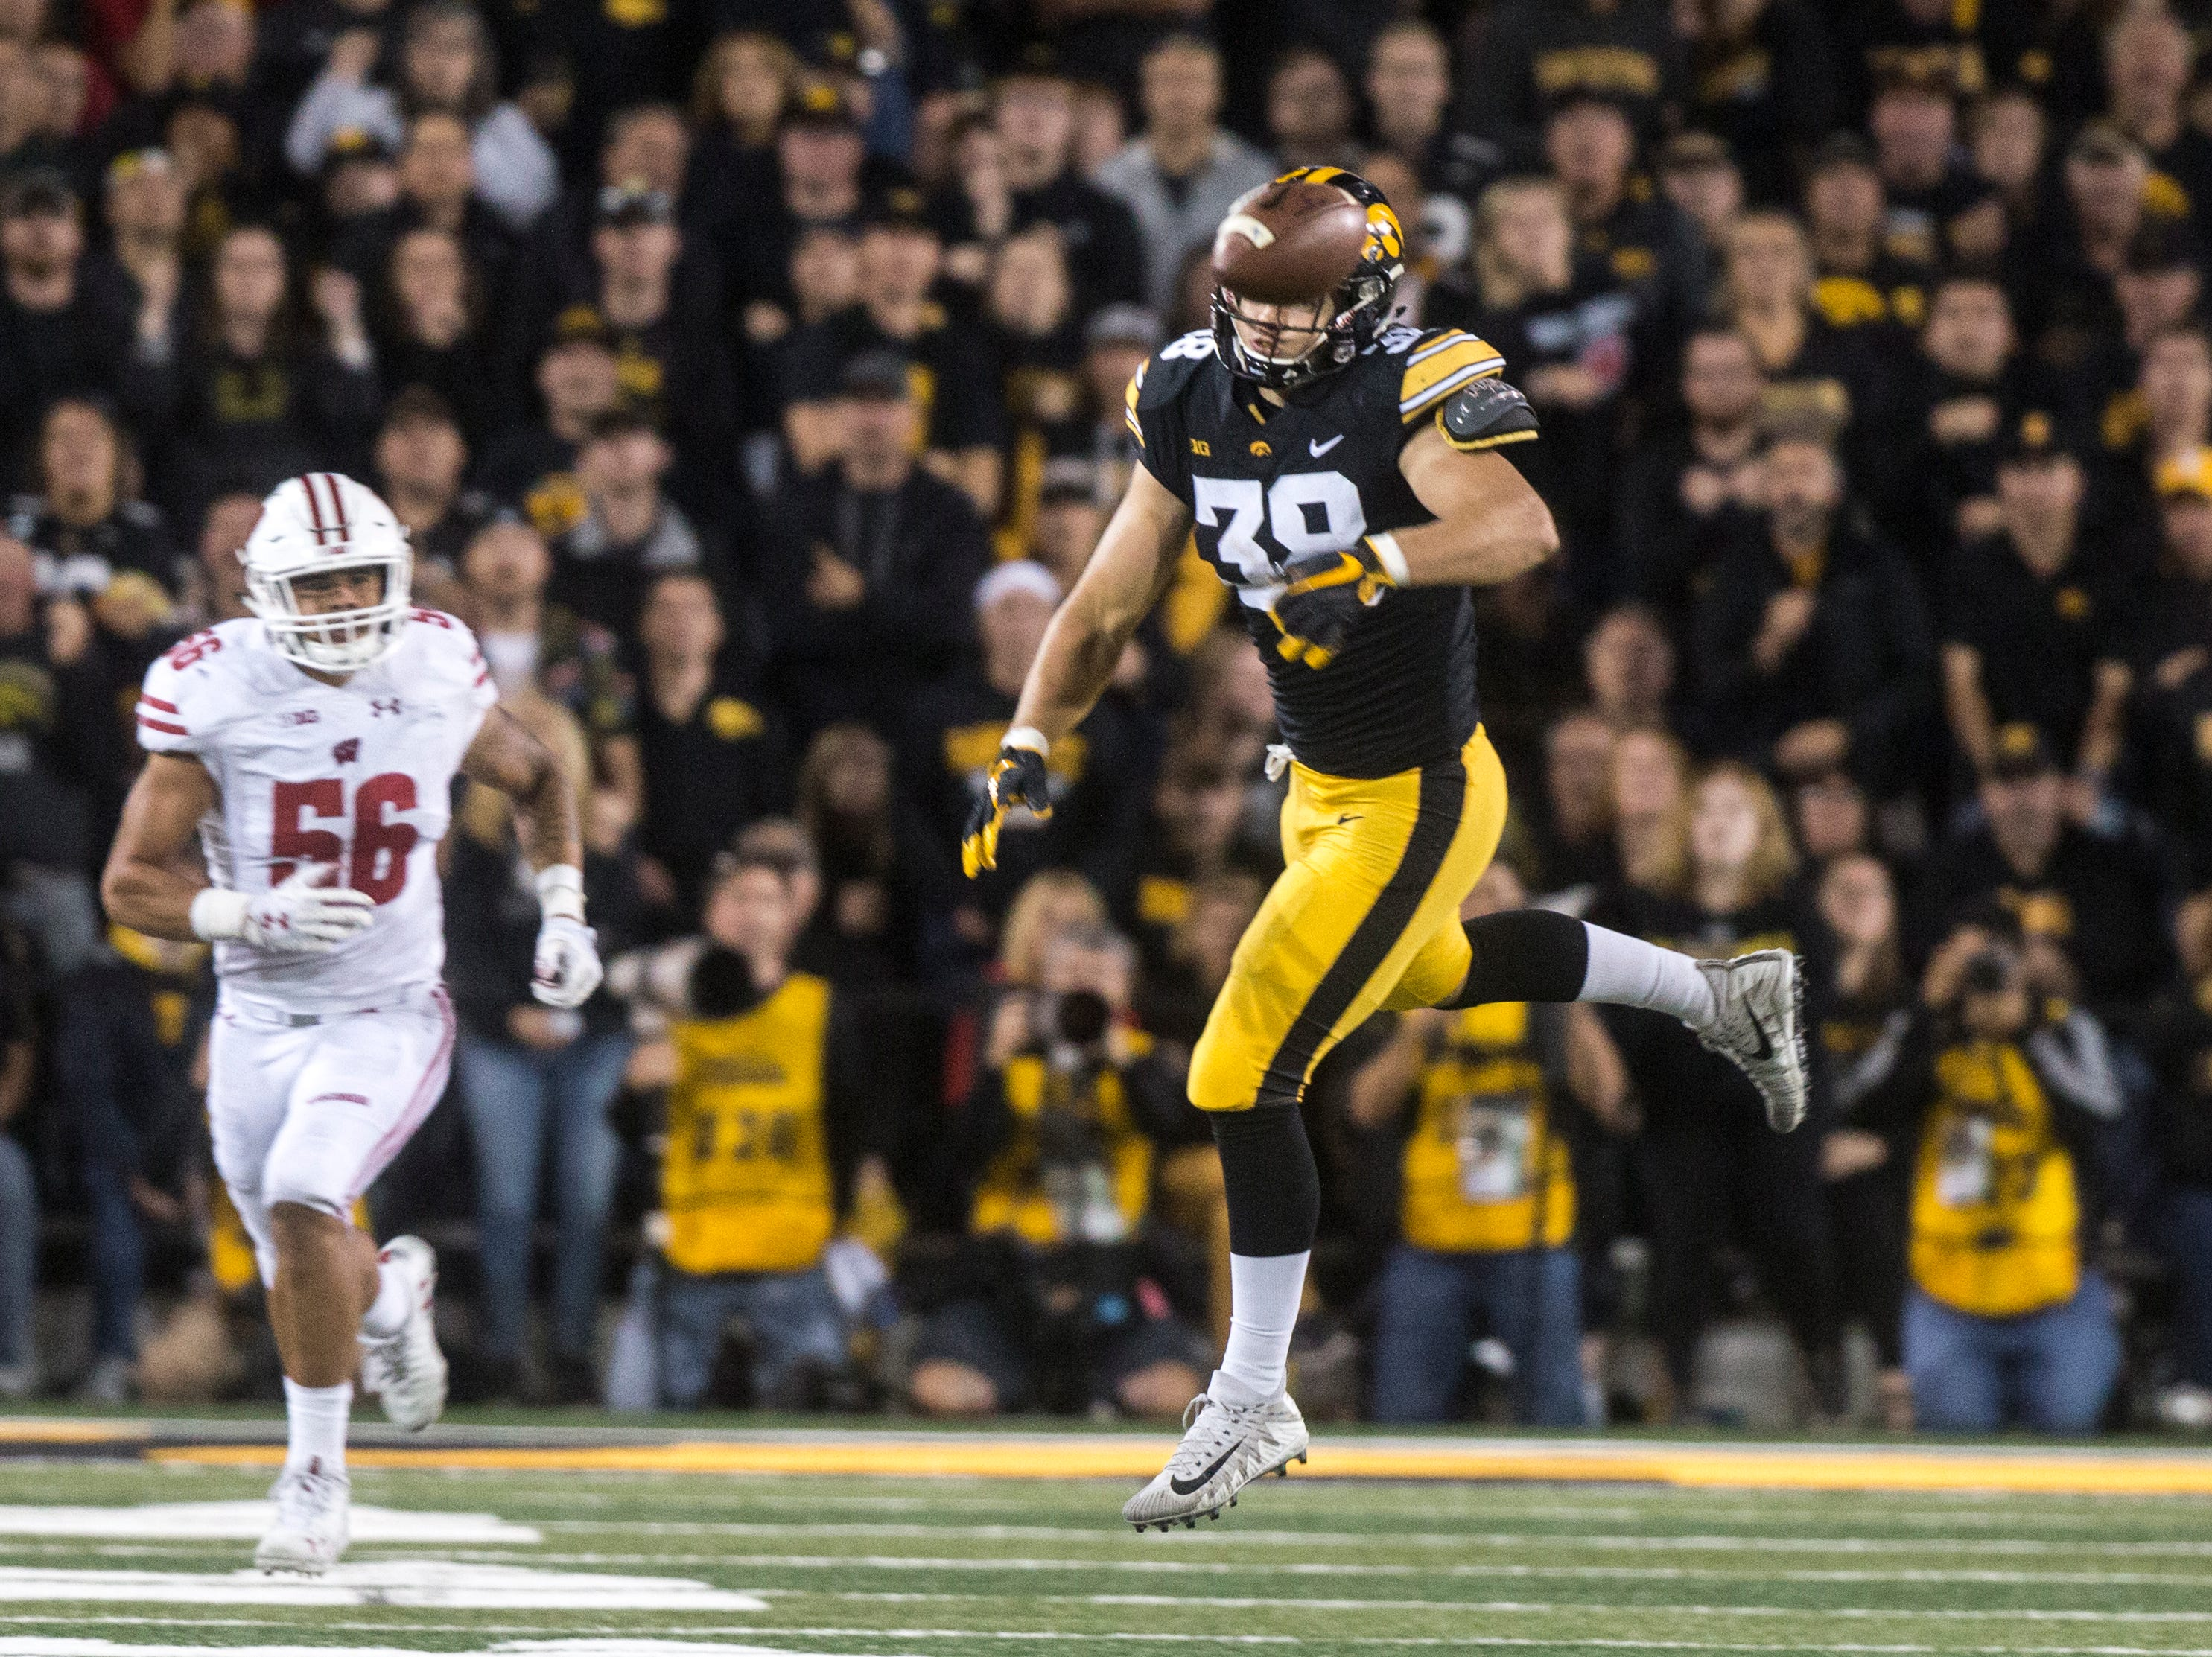 Iowa tight end T.J. Hockenson (38) can't come up with a reception during an NCAA football game on Saturday, Sept. 22, 2018, at Kinnick Stadium in Iowa City.